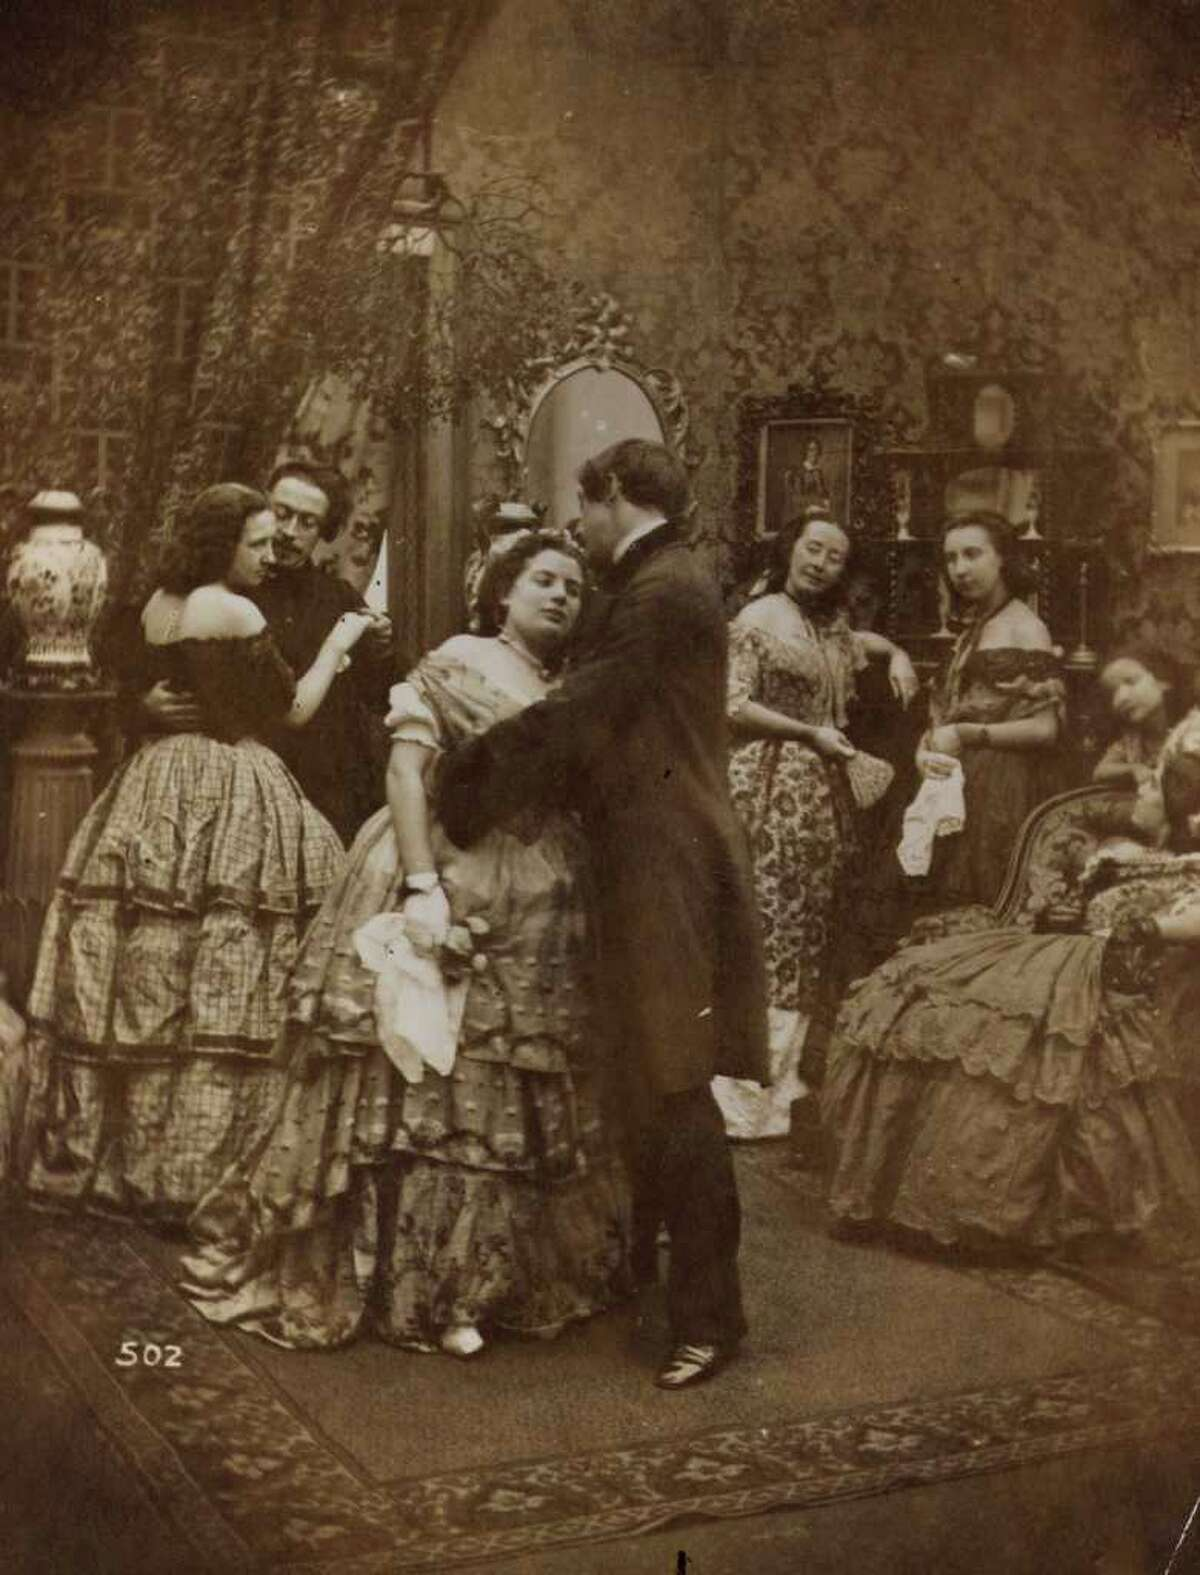 circa 1880: Couples dancing and kissing under the mistledoe at a soiree in Victorian times.